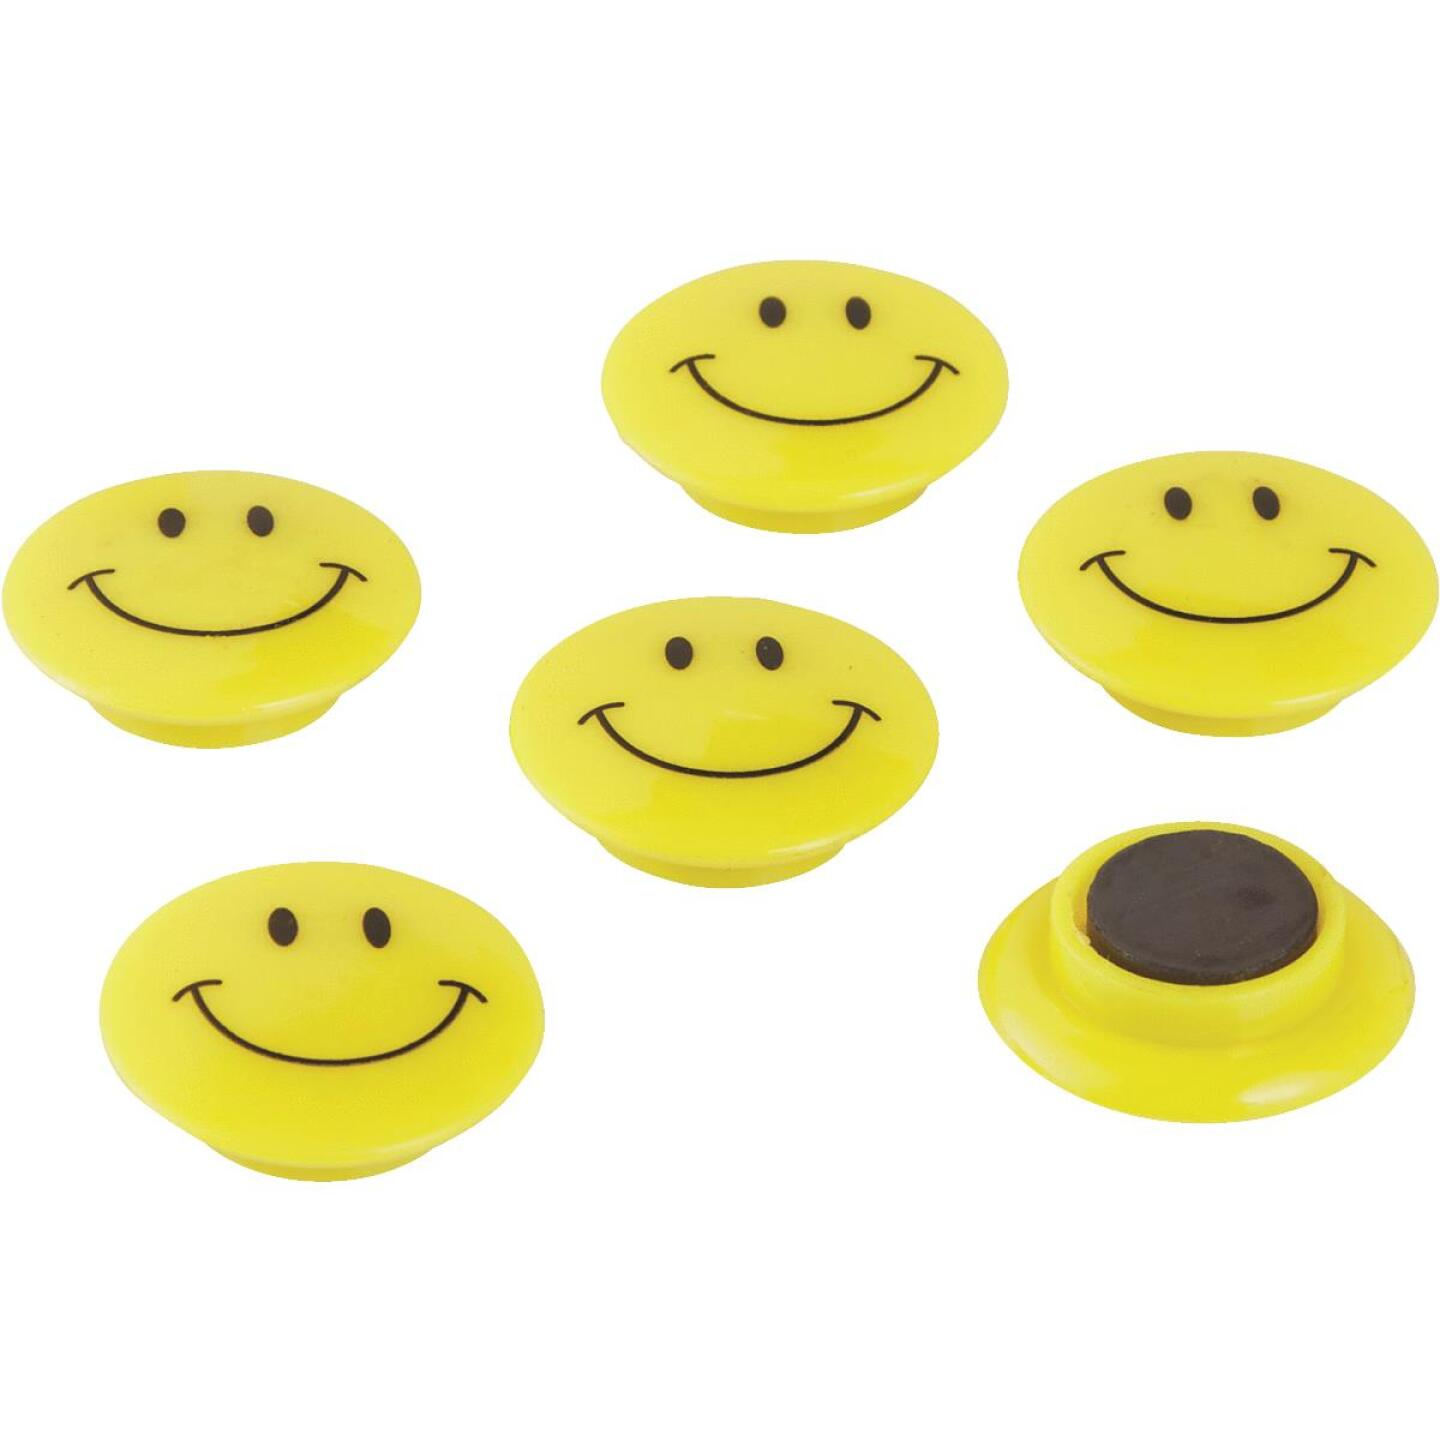 Smart Savers 1.18 In. Dia. Yellow Magnets (6-Pack) Image 3